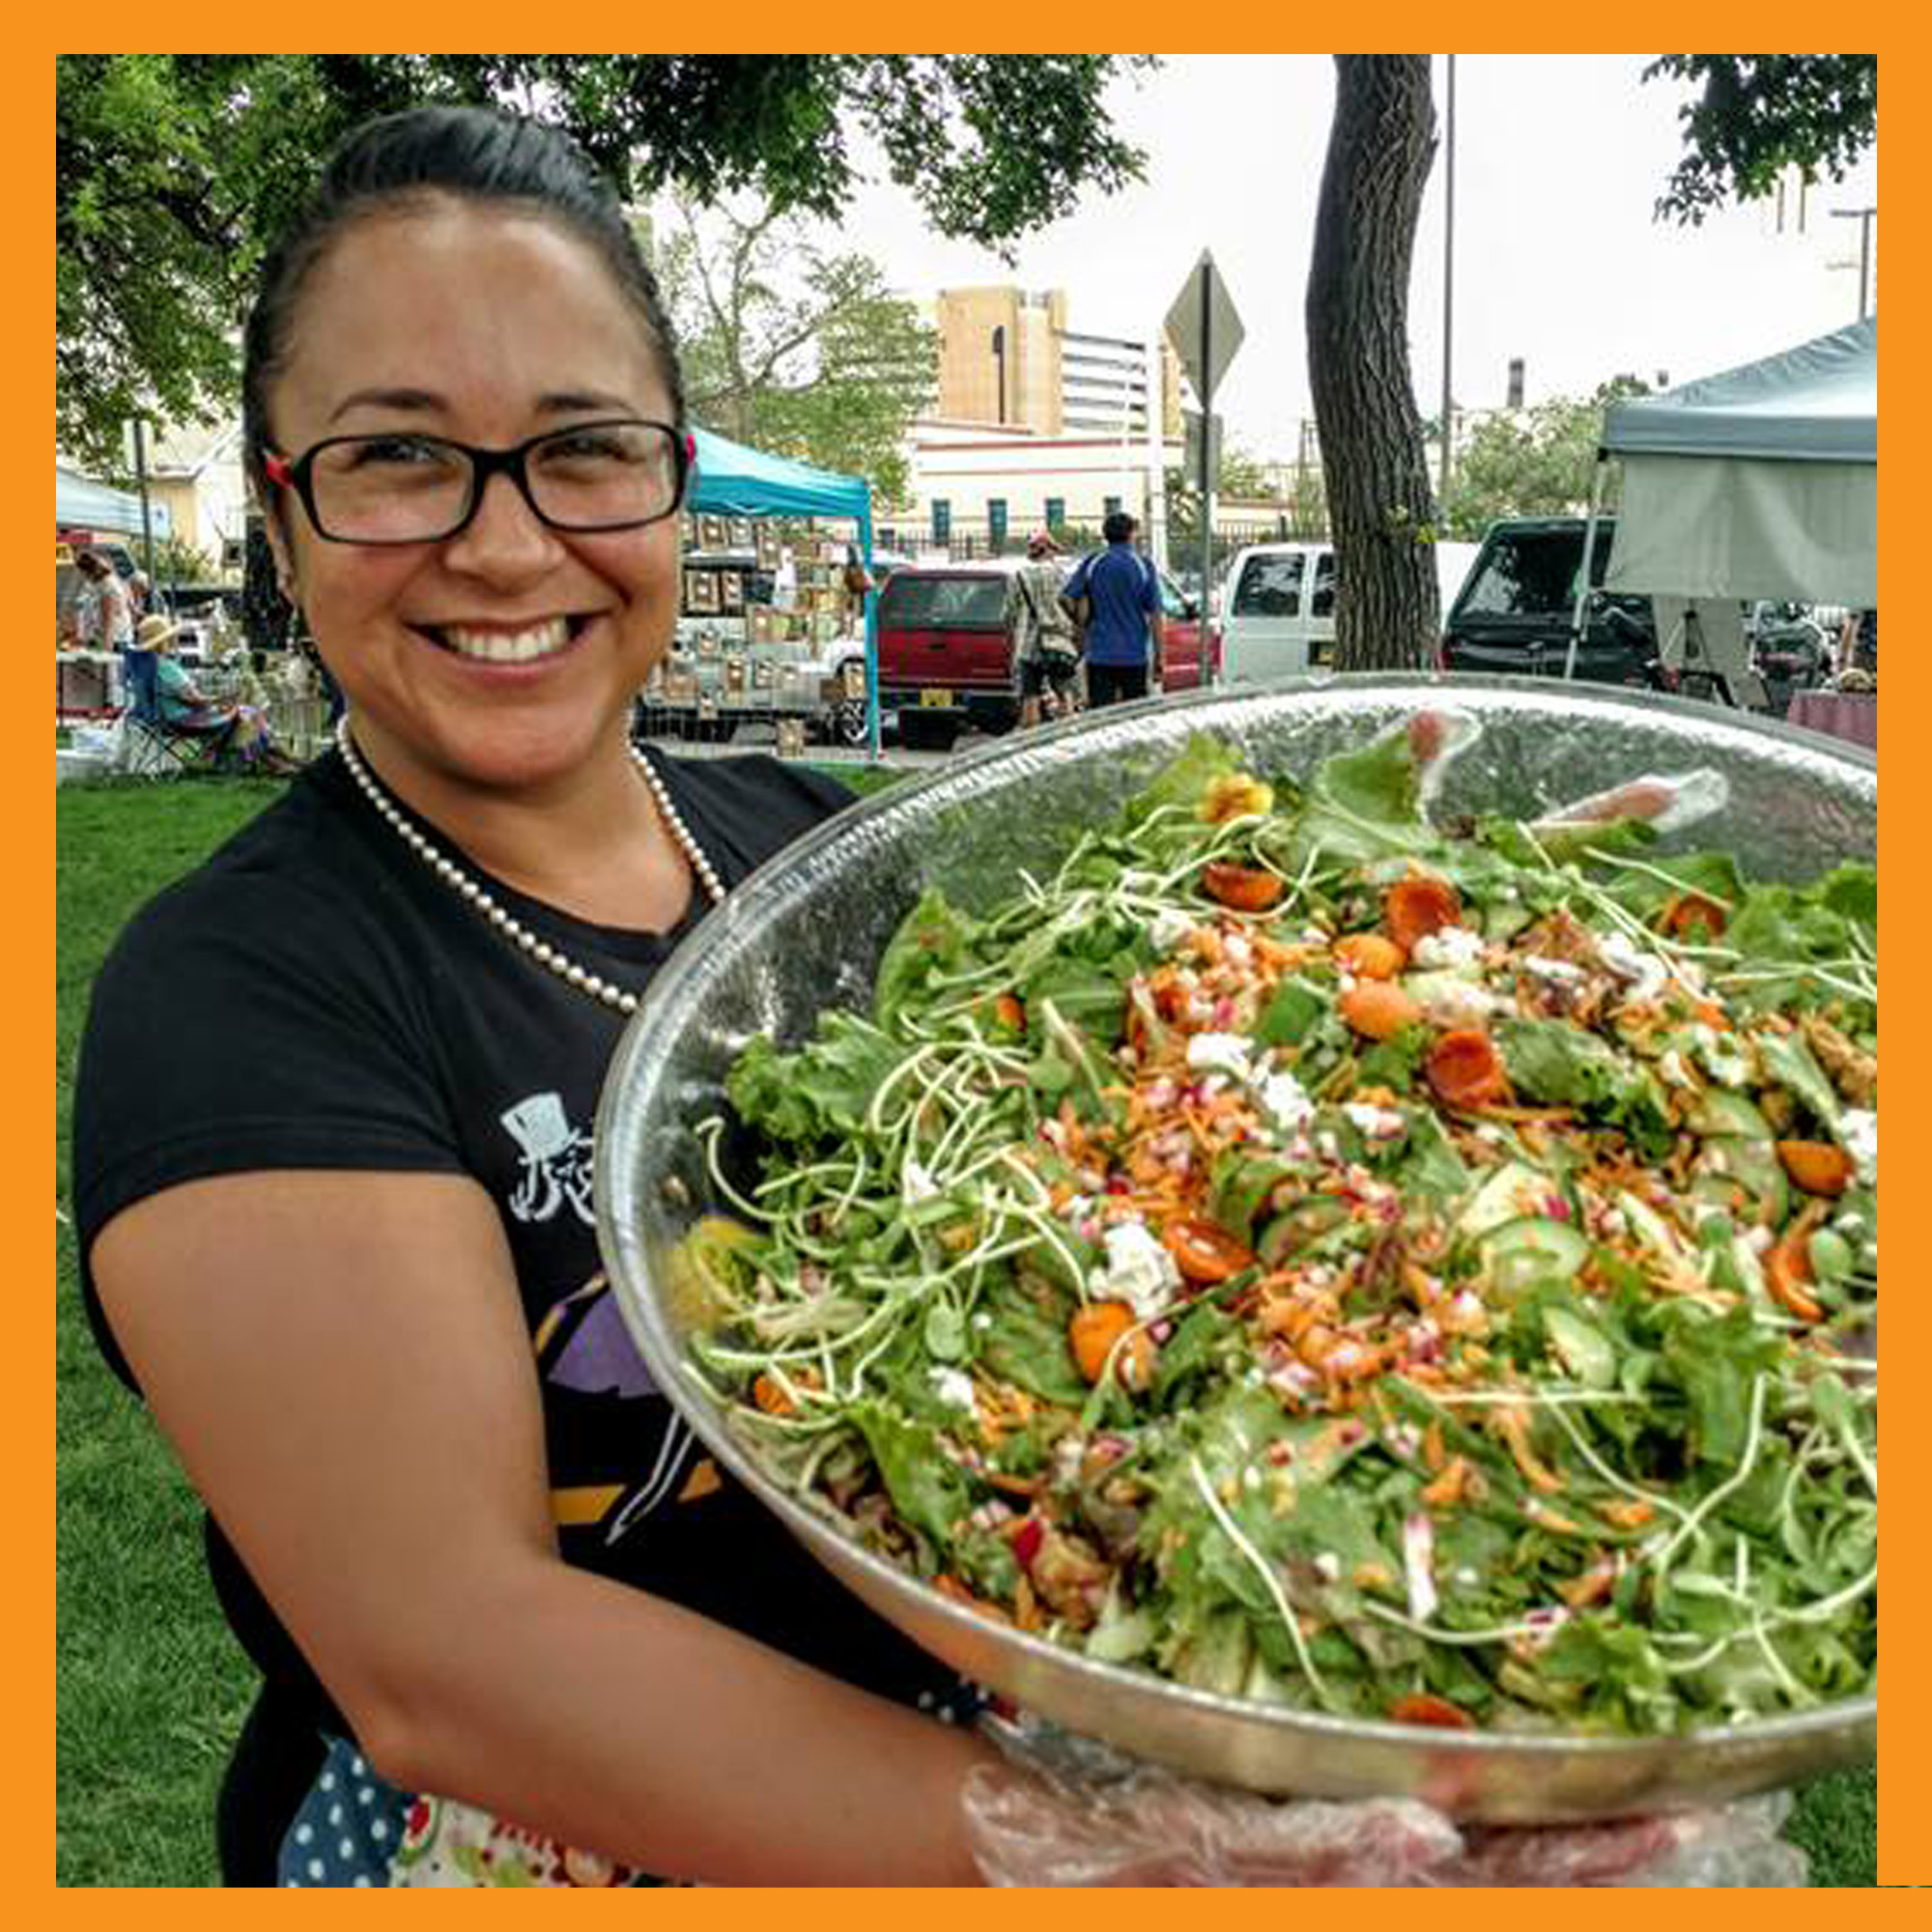 The Downtown Growers' Market